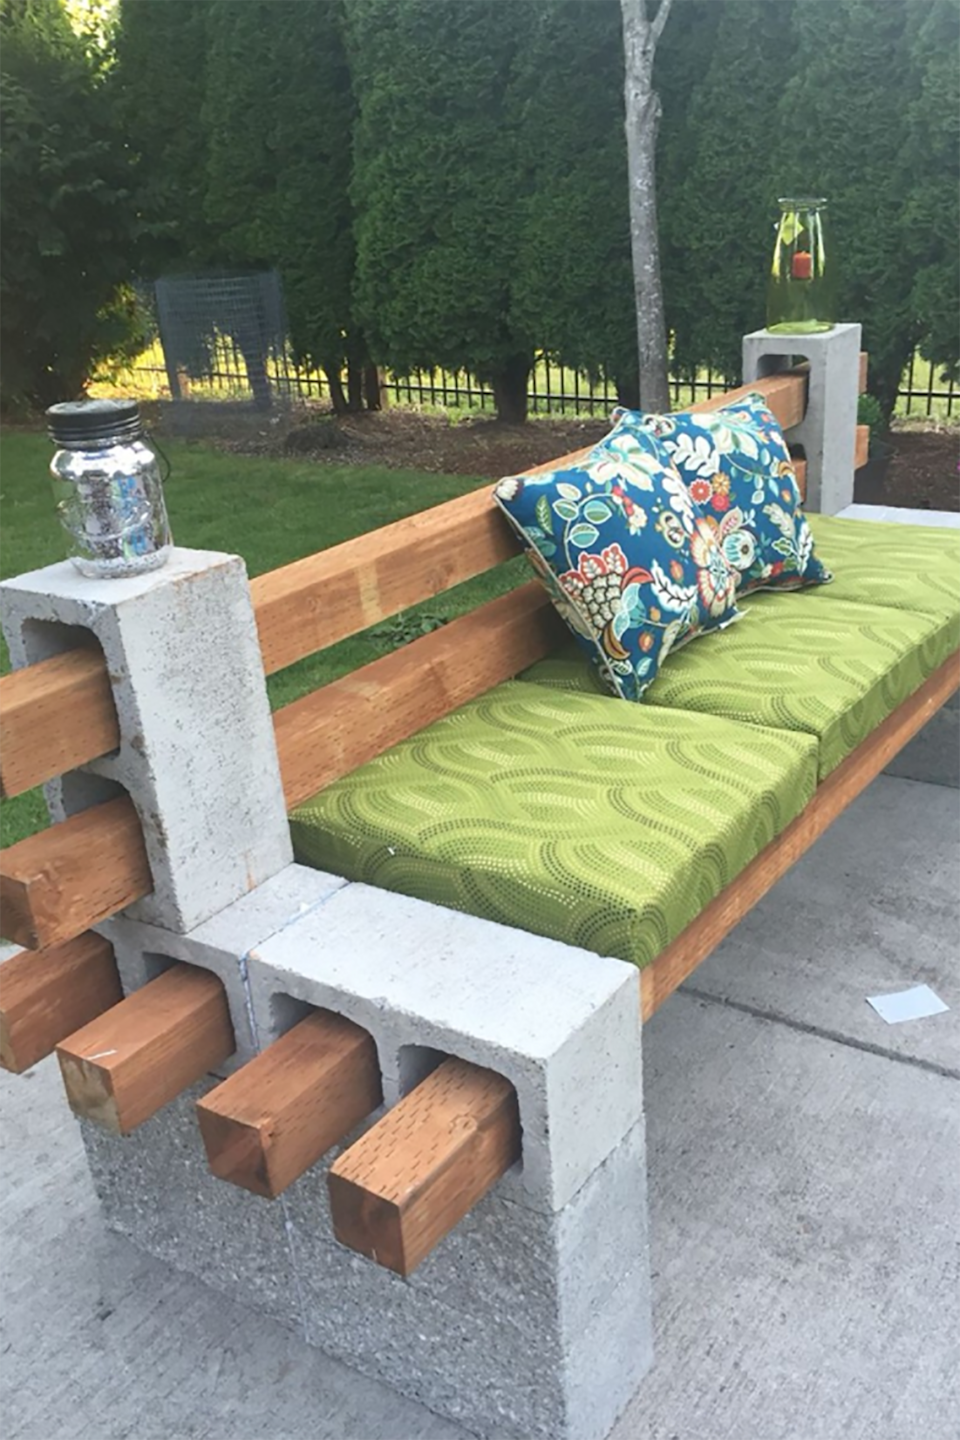 """<p>This has to be the easiest way to <a href=""""http://www.countryliving.com/gardening/garden-ideas/g3120/upcycled-garden-benches/"""" rel=""""nofollow noopener"""" target=""""_blank"""" data-ylk=""""slk:build a bench"""" class=""""link rapid-noclick-resp"""">build a bench</a> we've ever seen. Just make sure to secure the back rest with concrete glue.</p><p><em>Get the tutorial at <a href=""""http://www.iconhomedesign.com/cinder-block-bench-for-your-home-outdoors-beauty.html/cinder-block-bench-with-back-design"""" rel=""""nofollow noopener"""" target=""""_blank"""" data-ylk=""""slk:iconhomedesign.com"""" class=""""link rapid-noclick-resp"""">iconhomedesign.com</a>.</em></p>"""